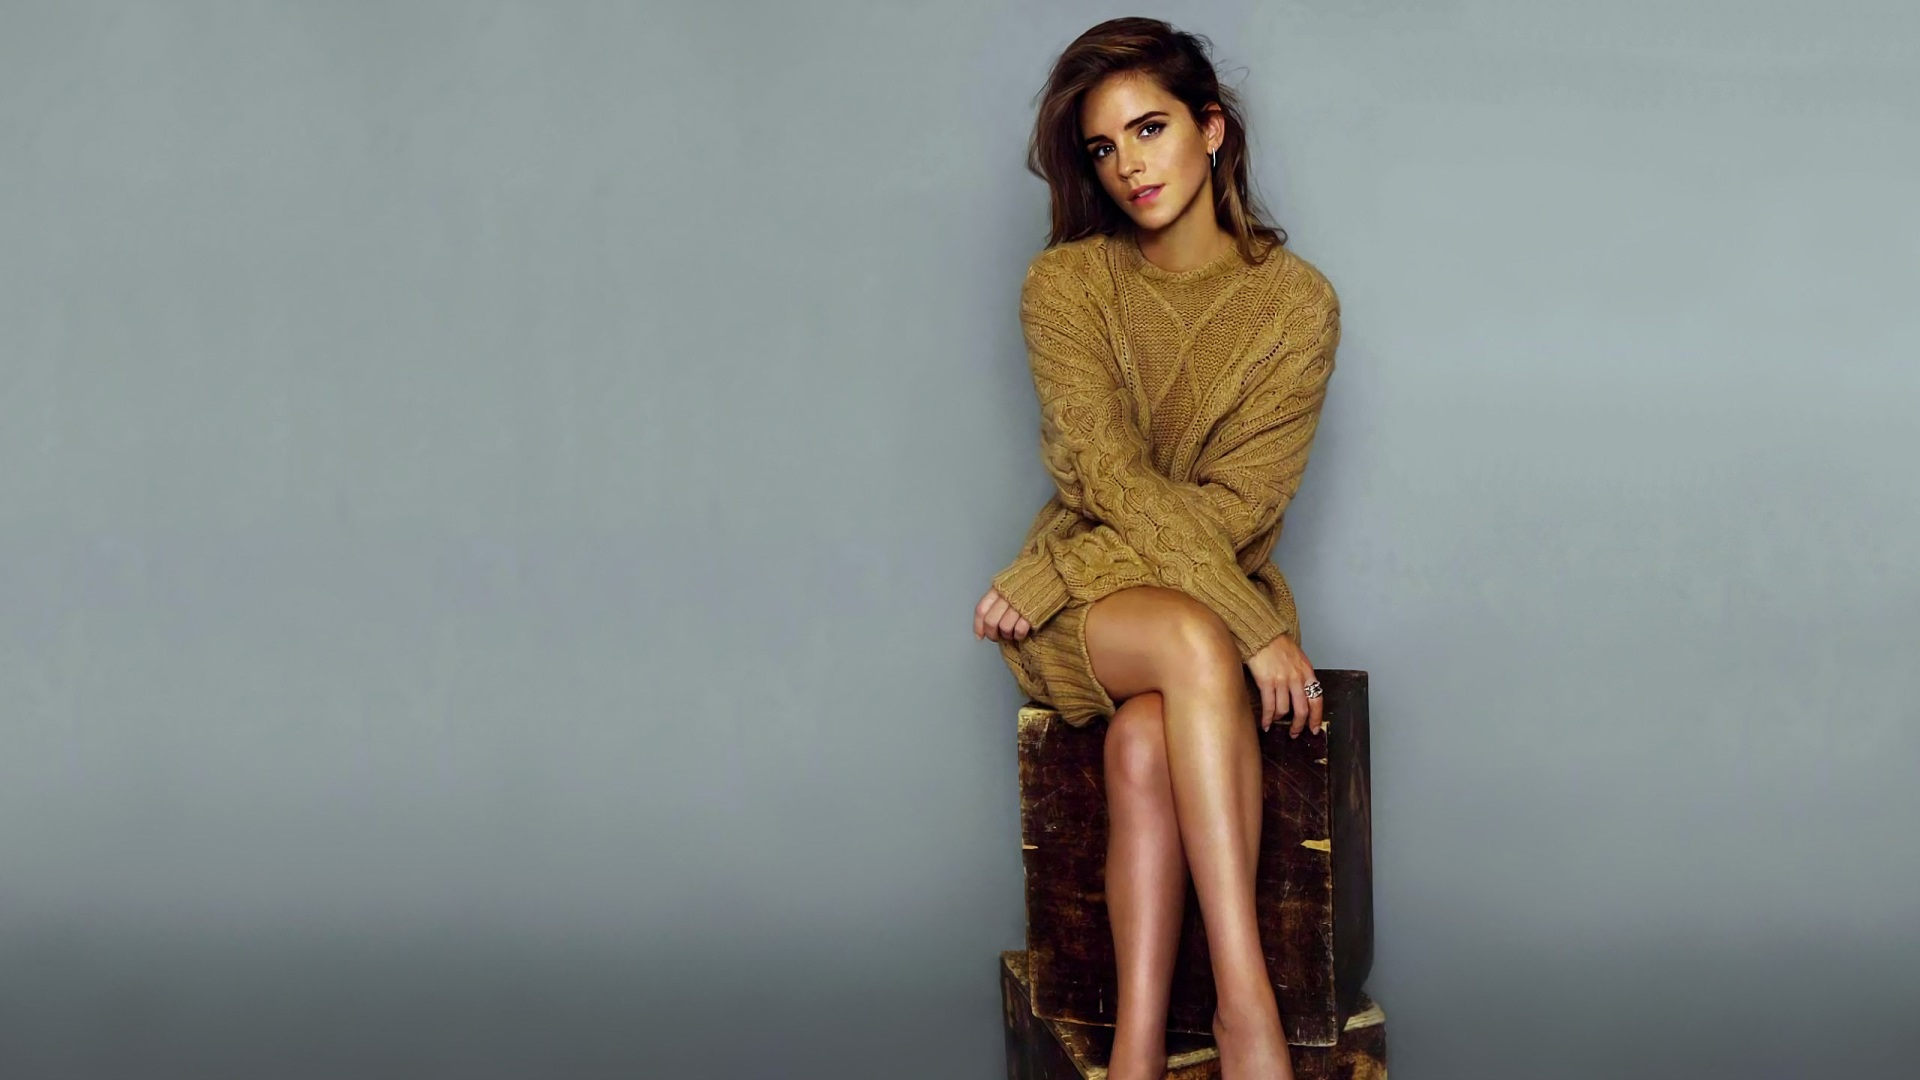 Hd Wallpapers 1080p Nature Animated Emma Watson Hd Images